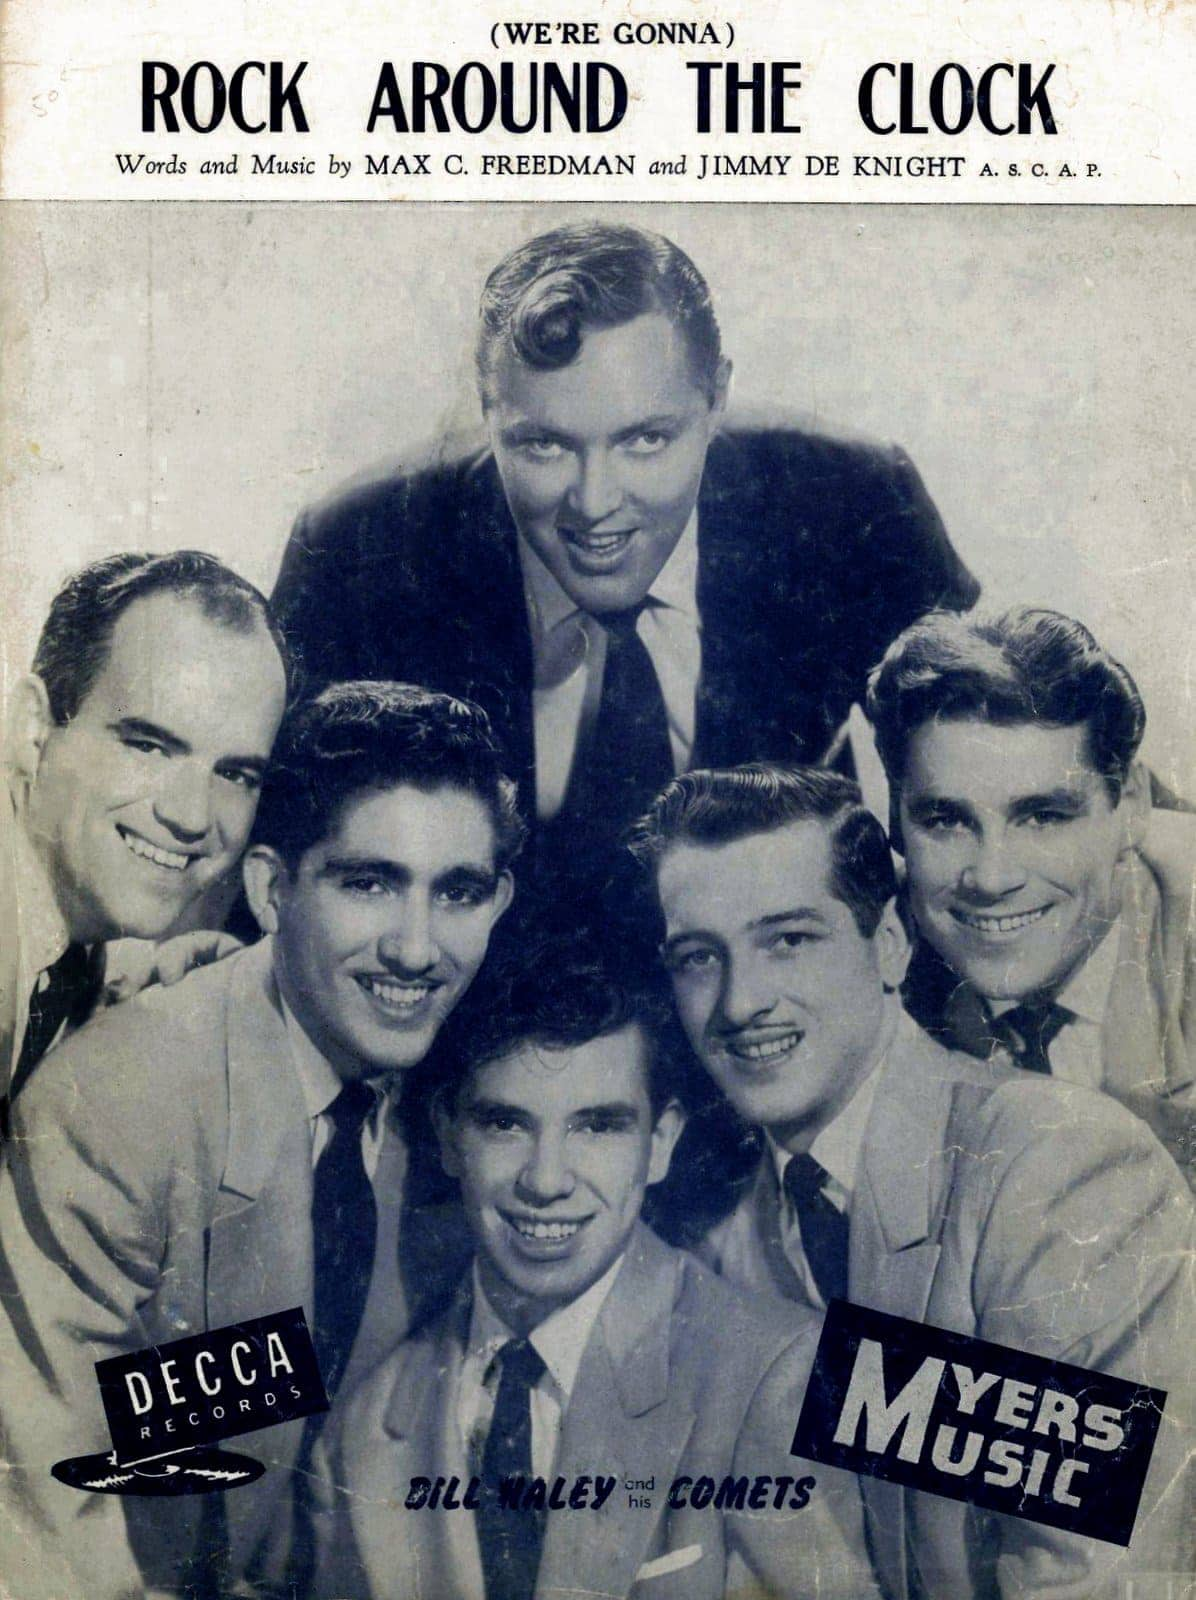 Bill Haley and the Comets Rock Around the Clock music